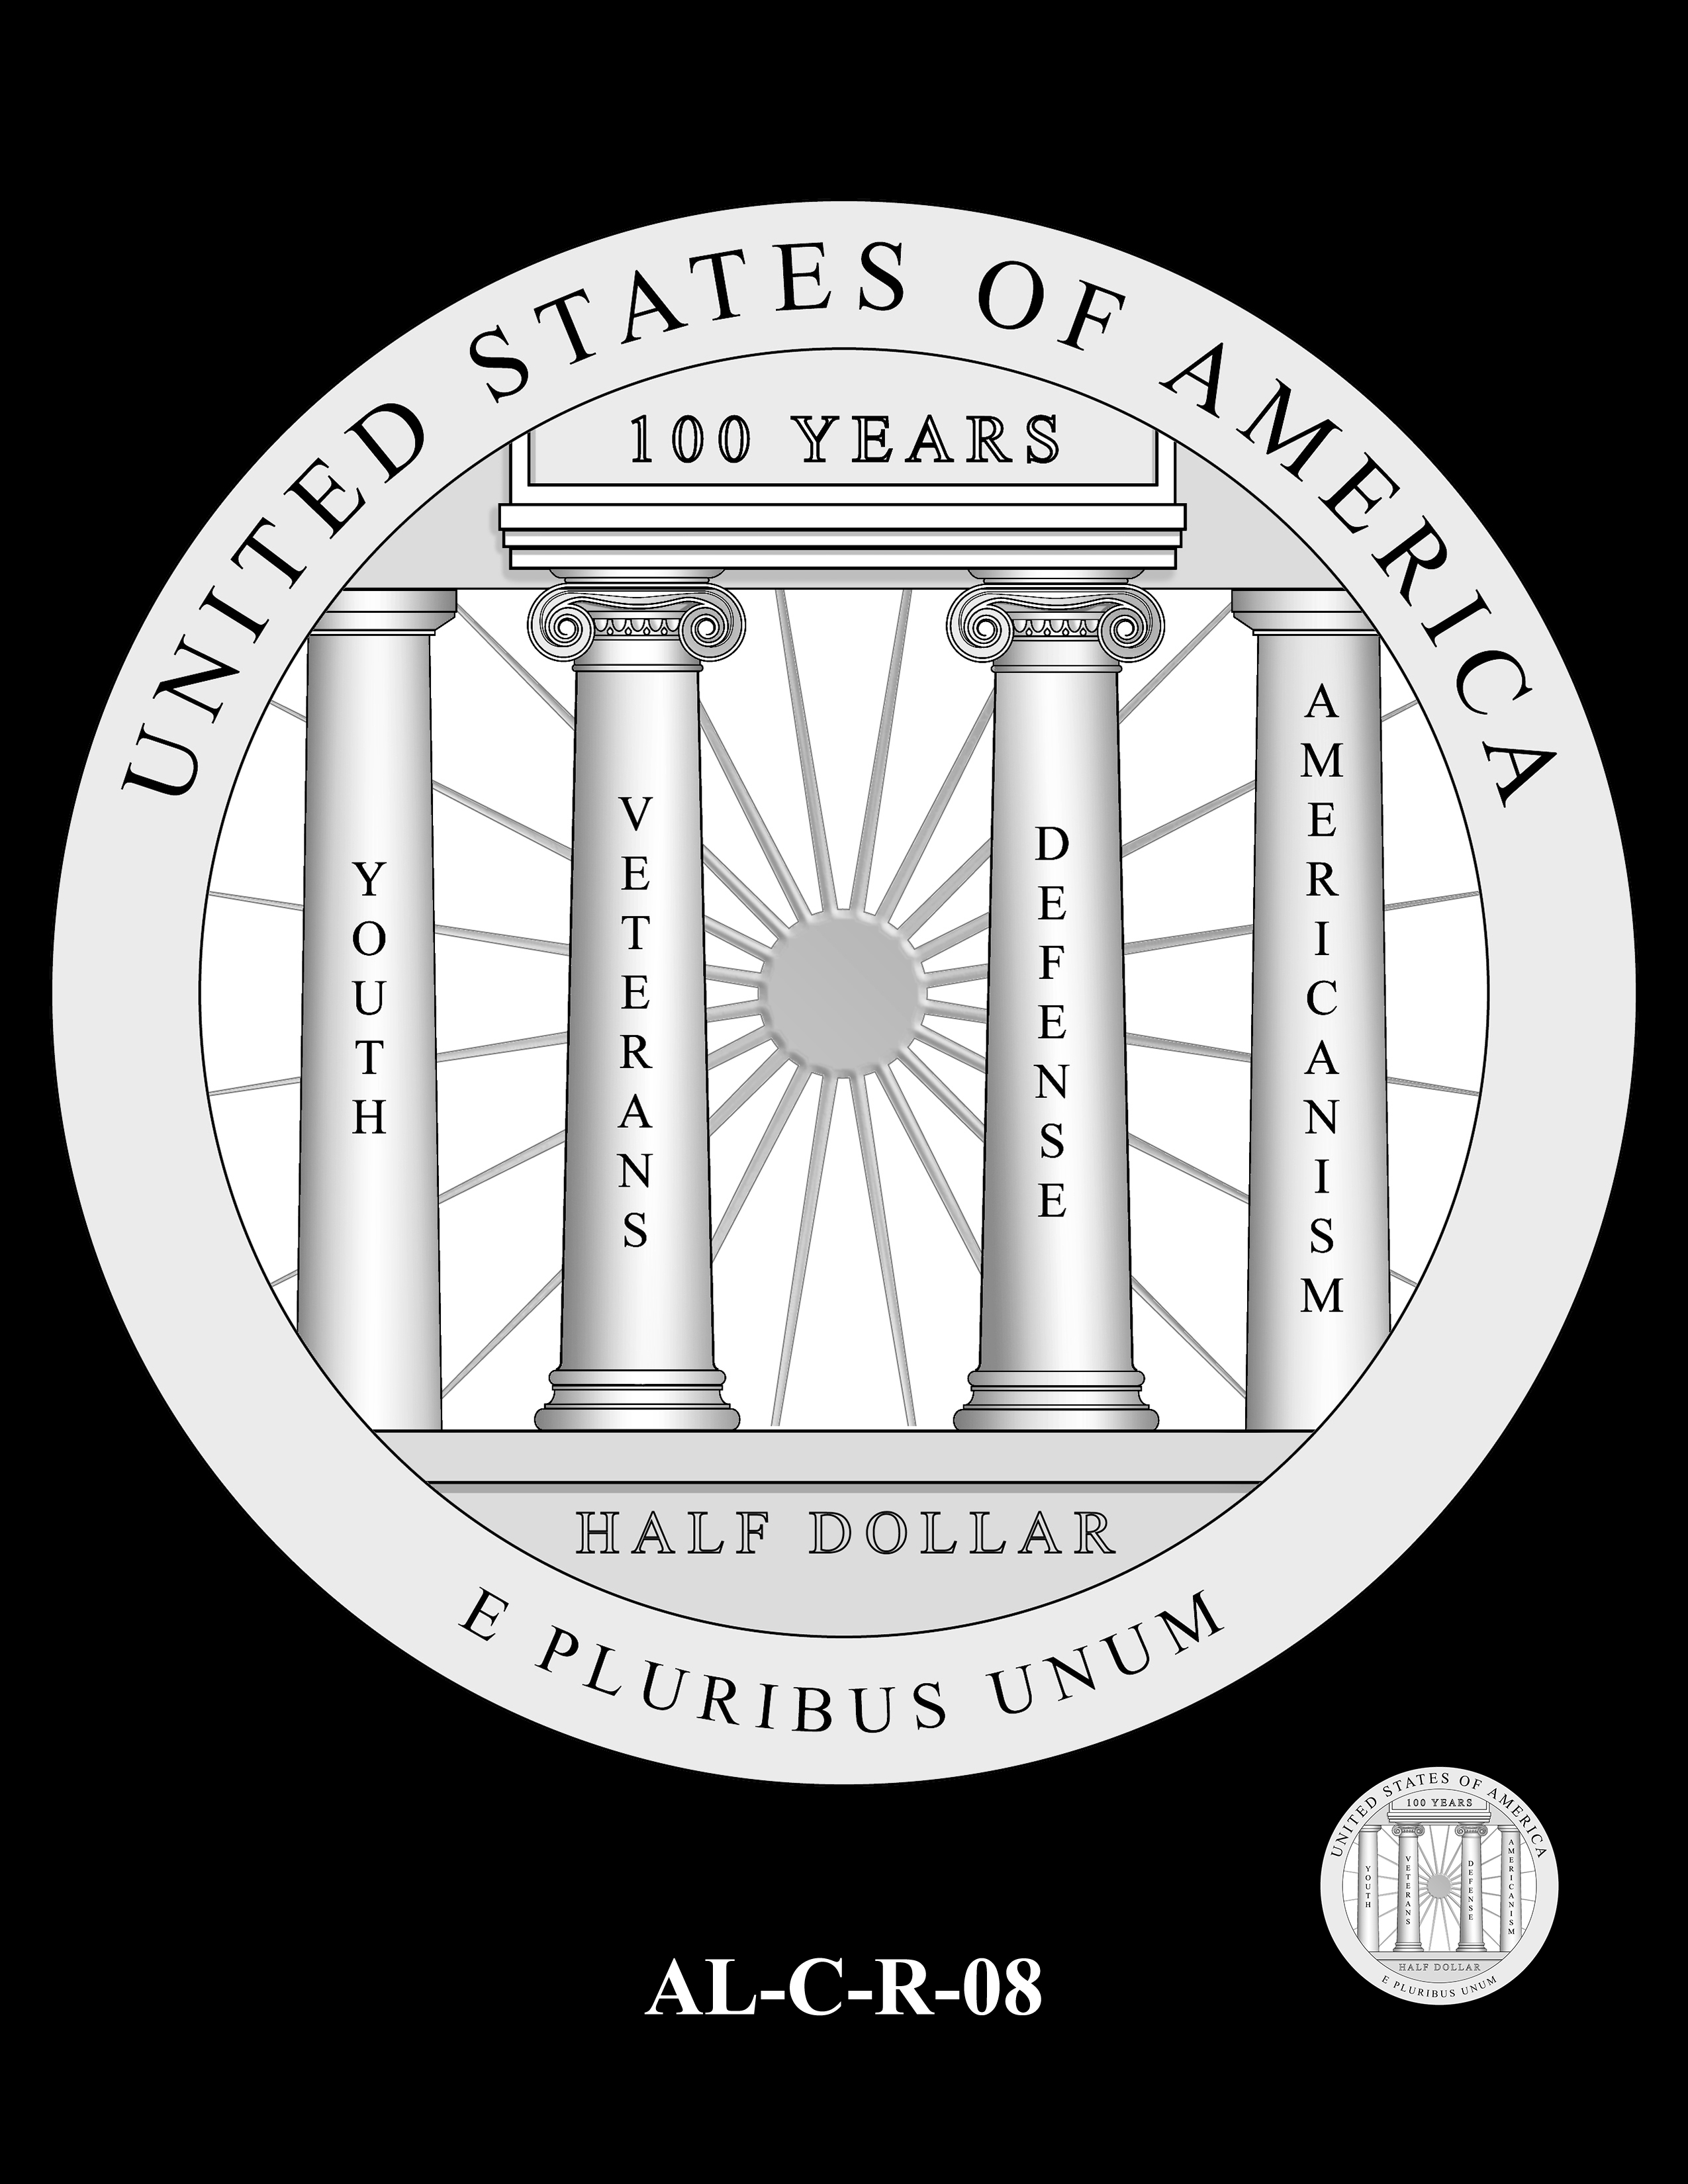 AL-C-R-08 -- 2019 American Legion 100th Anniversary Commemorative Coin Program - Clad Reverse